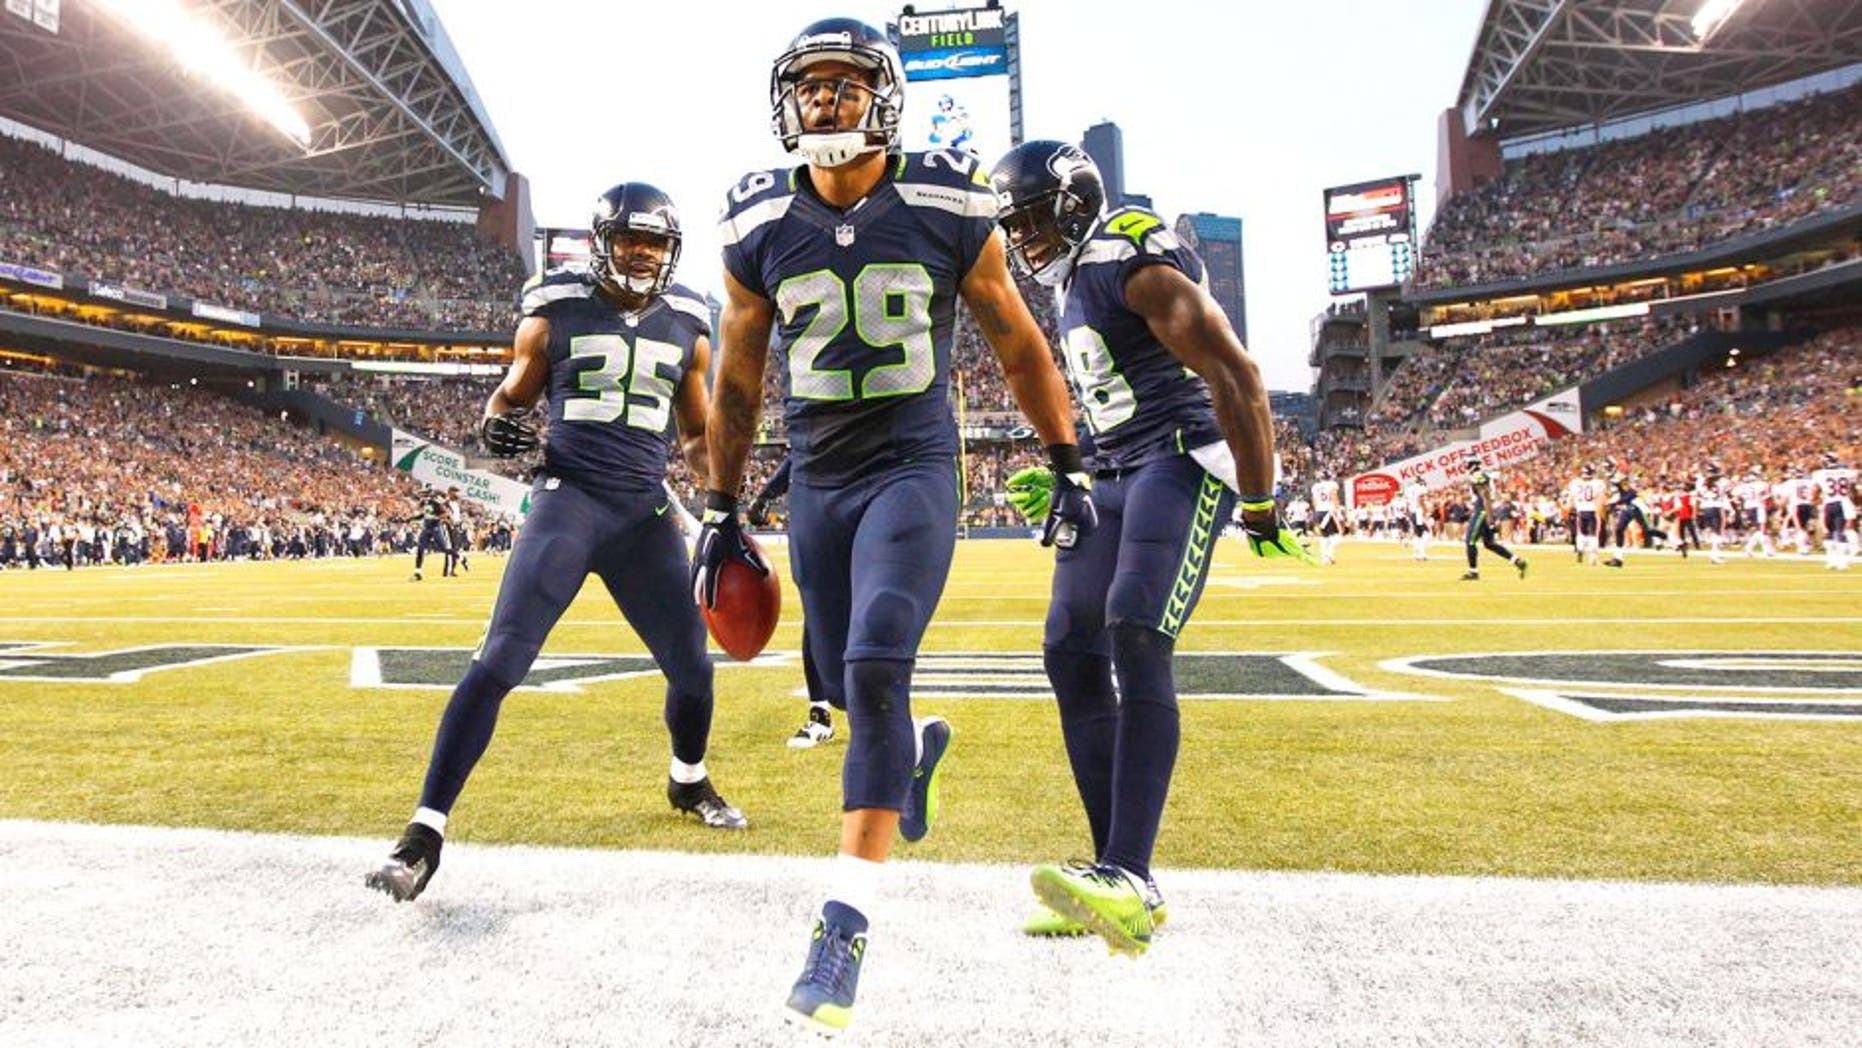 Aug 22, 2014; Seattle, WA, USA; Seattle Seahawks free safety Earl Thomas (29) celebrates after a 59-yard punt return against the Chicago Bears during the second quarter at CenturyLink Field. Mandatory Credit: Joe Nicholson-USA TODAY Sports